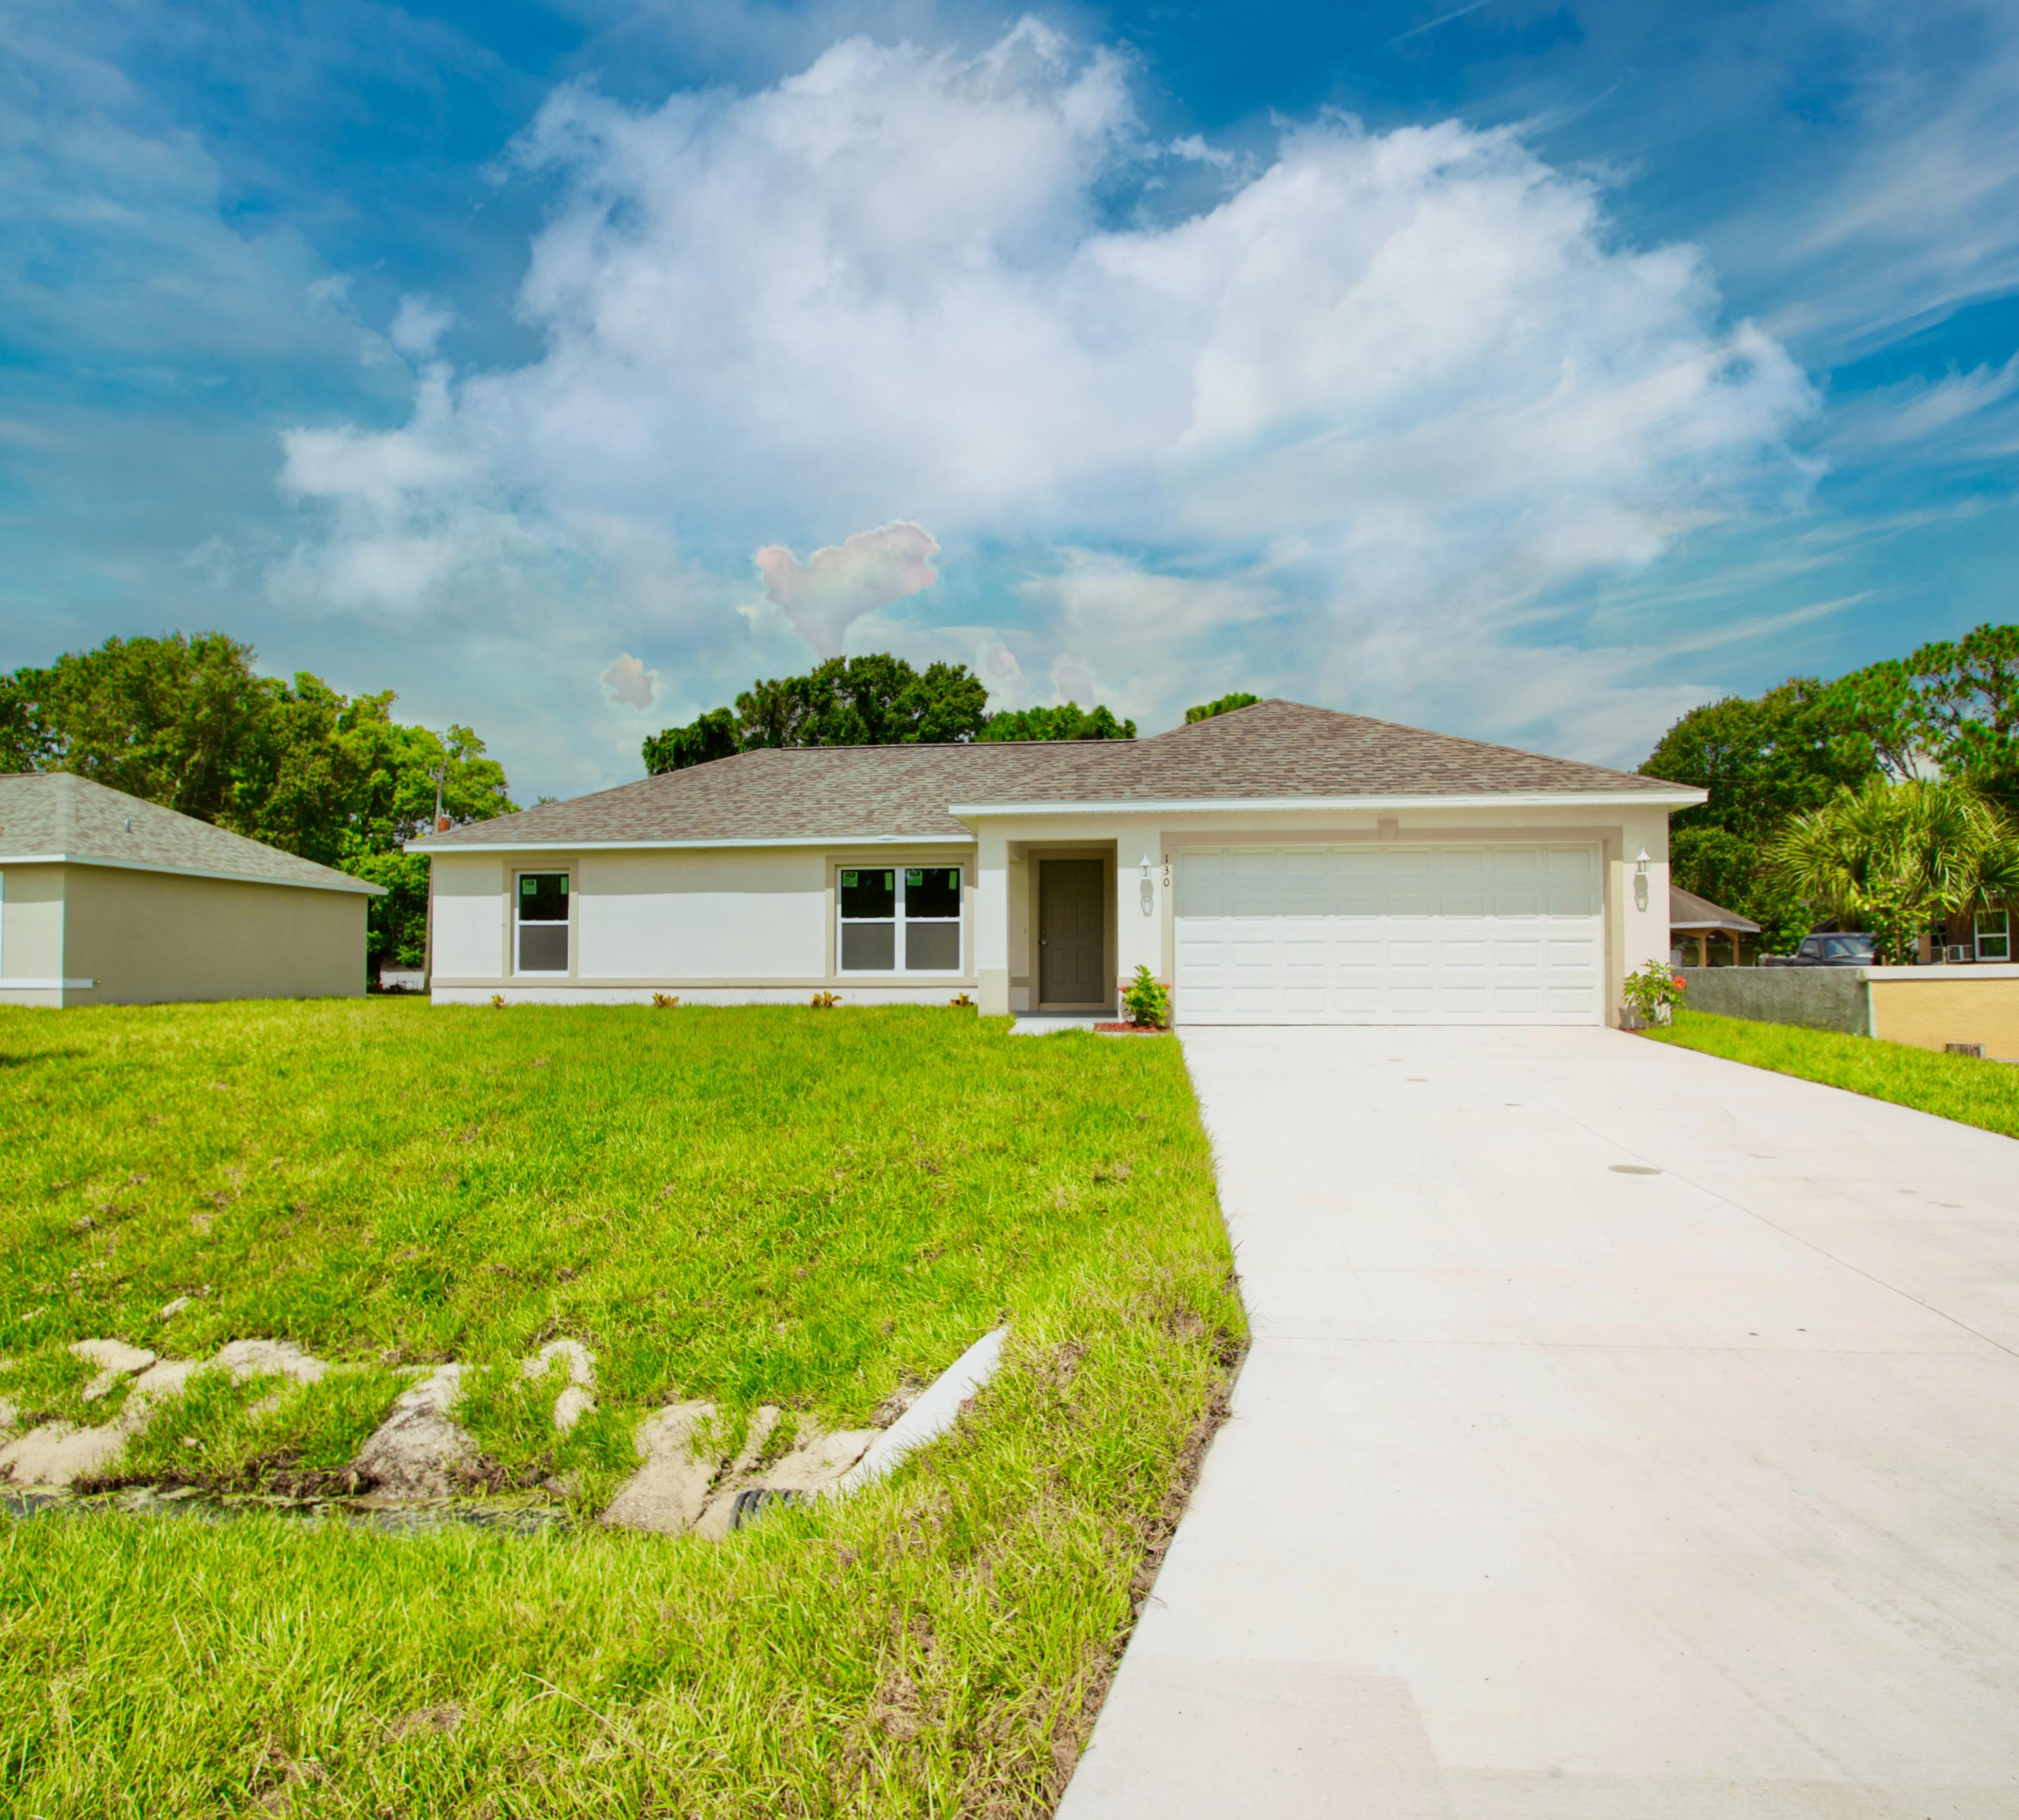 Photo of 130 S Oak Street, Fellsmere, FL 32948